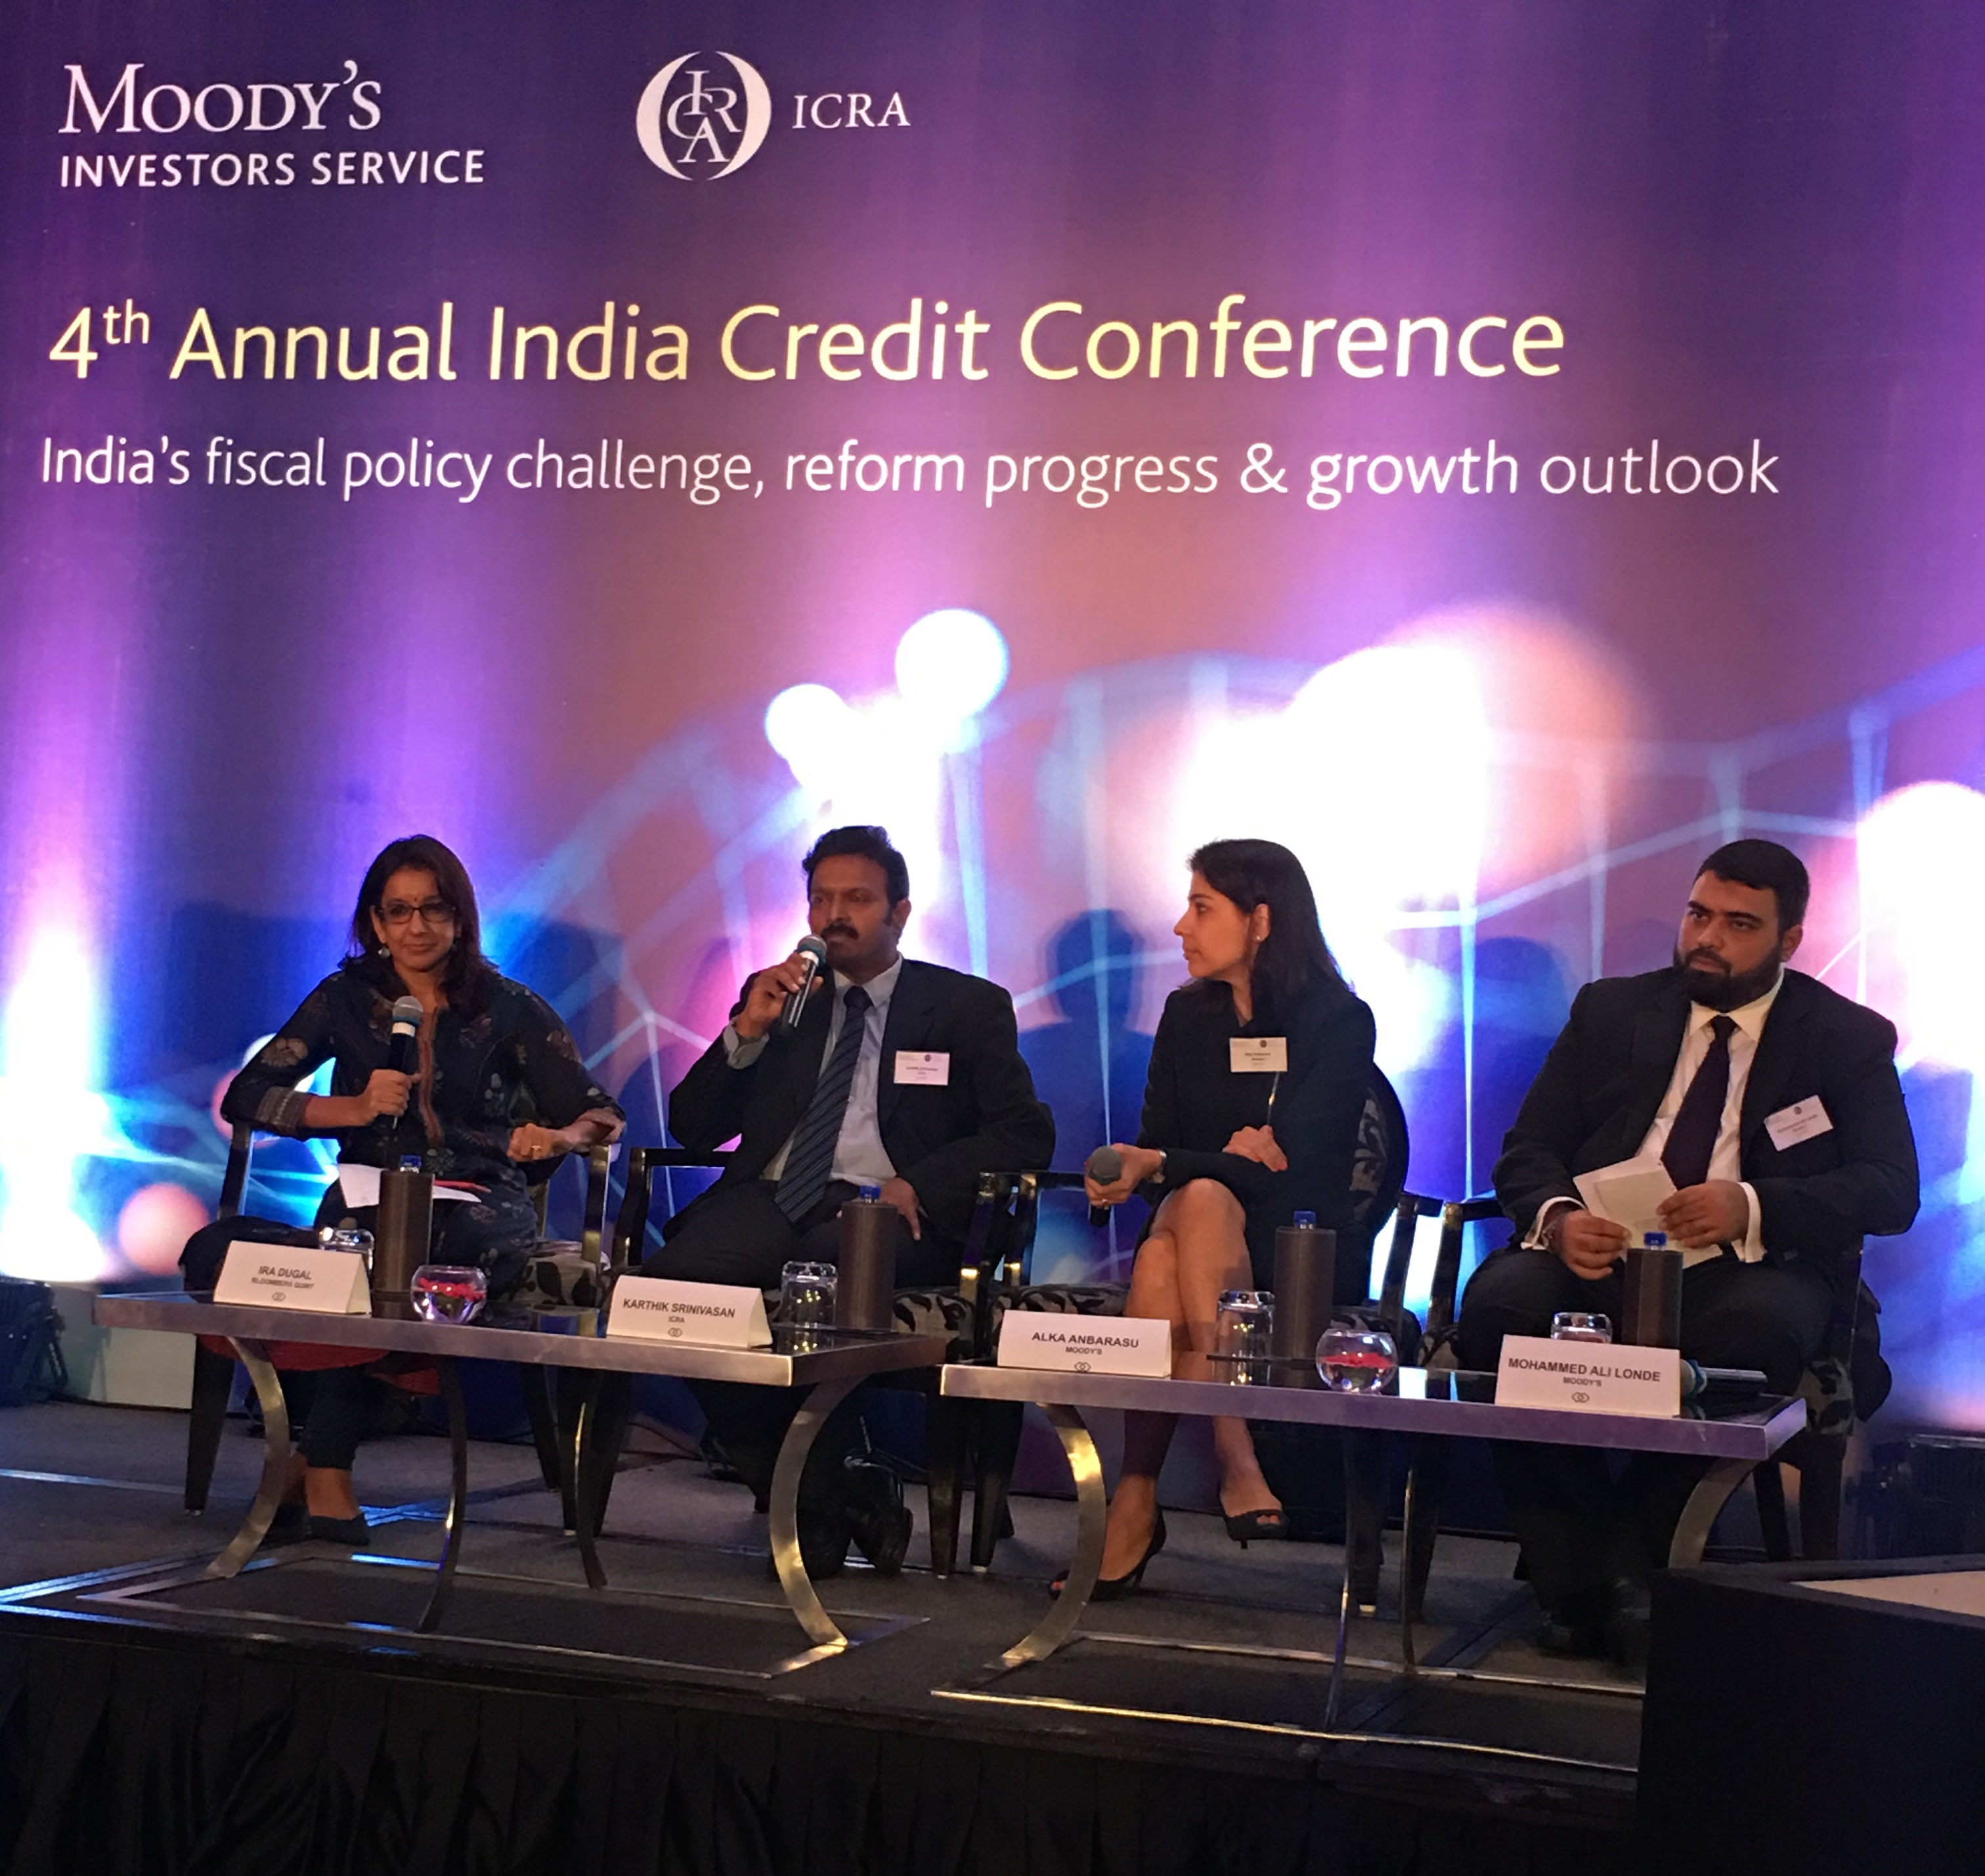 Karthik Srinivasan, Group Head, Financial Sector Ratings, ICRA shares his views in a panel discussion on India's financial institutions: What are the reforms and resolutions needed now that recapitalization is underway? at Moody's ICRA 4th Annual India Credit Conference in Mumbai.